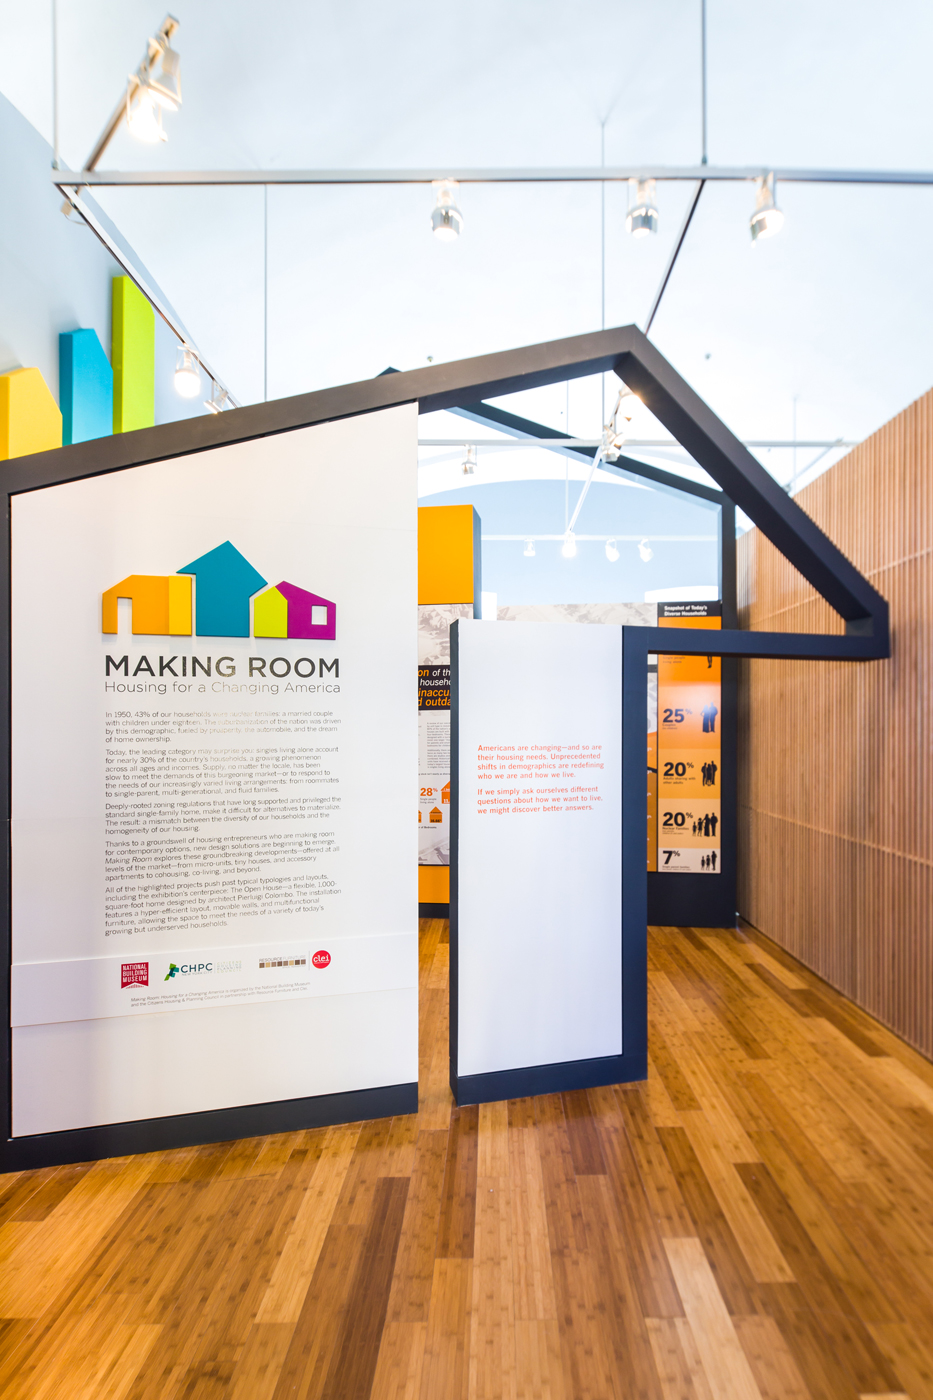 Flexible housing for a changing America @BuildingMuseum